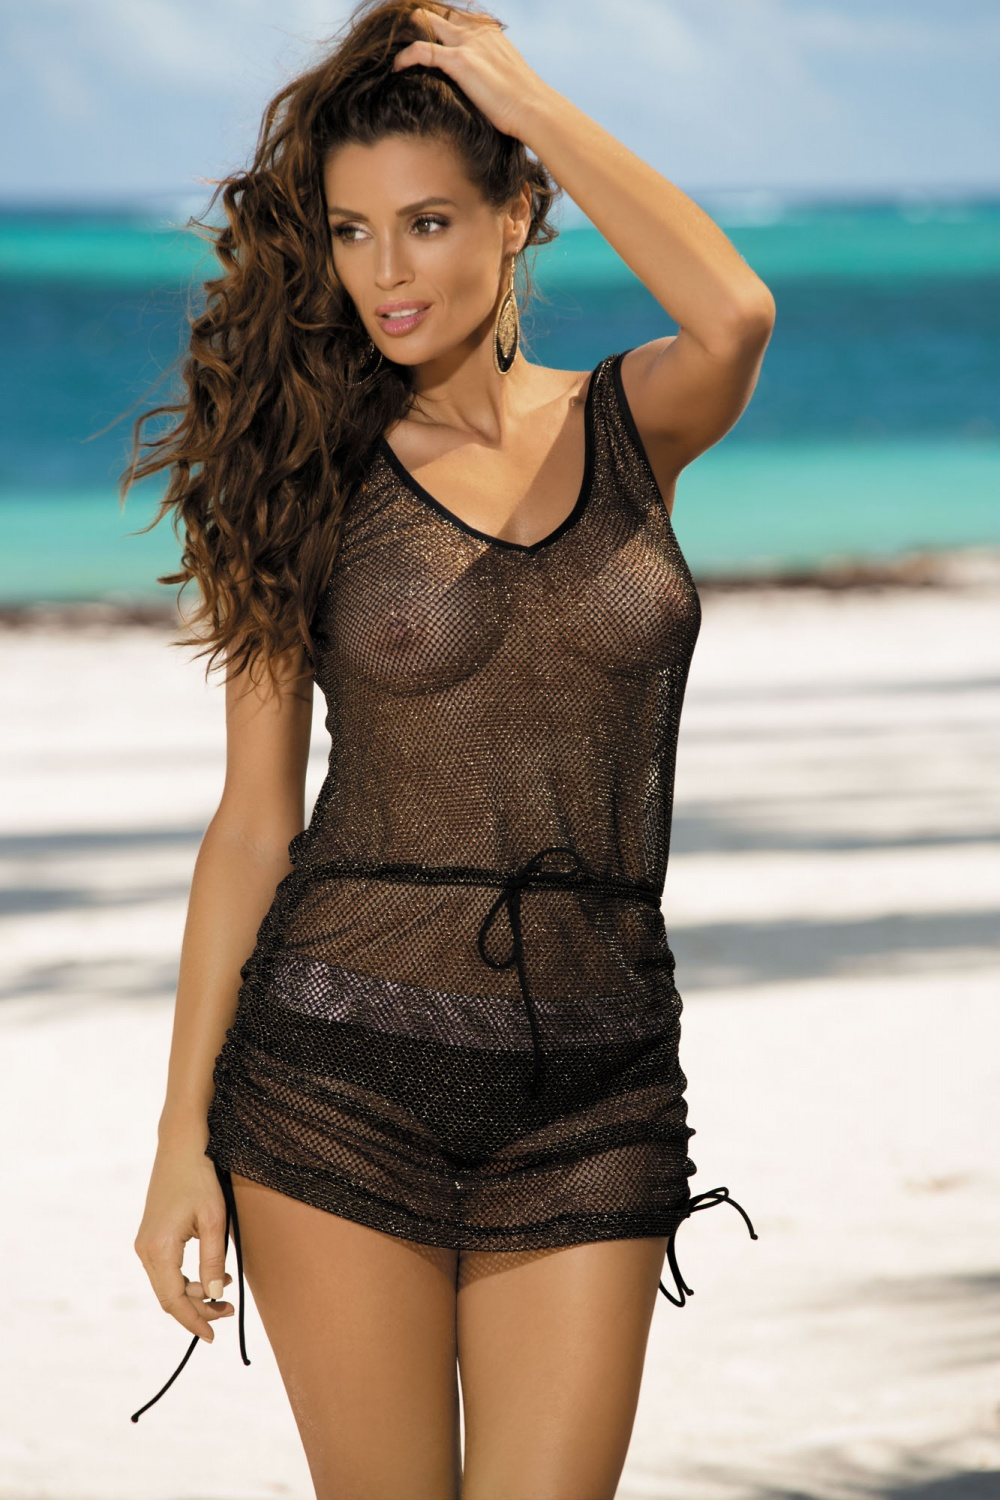 Beach tunic model 56943 Marko